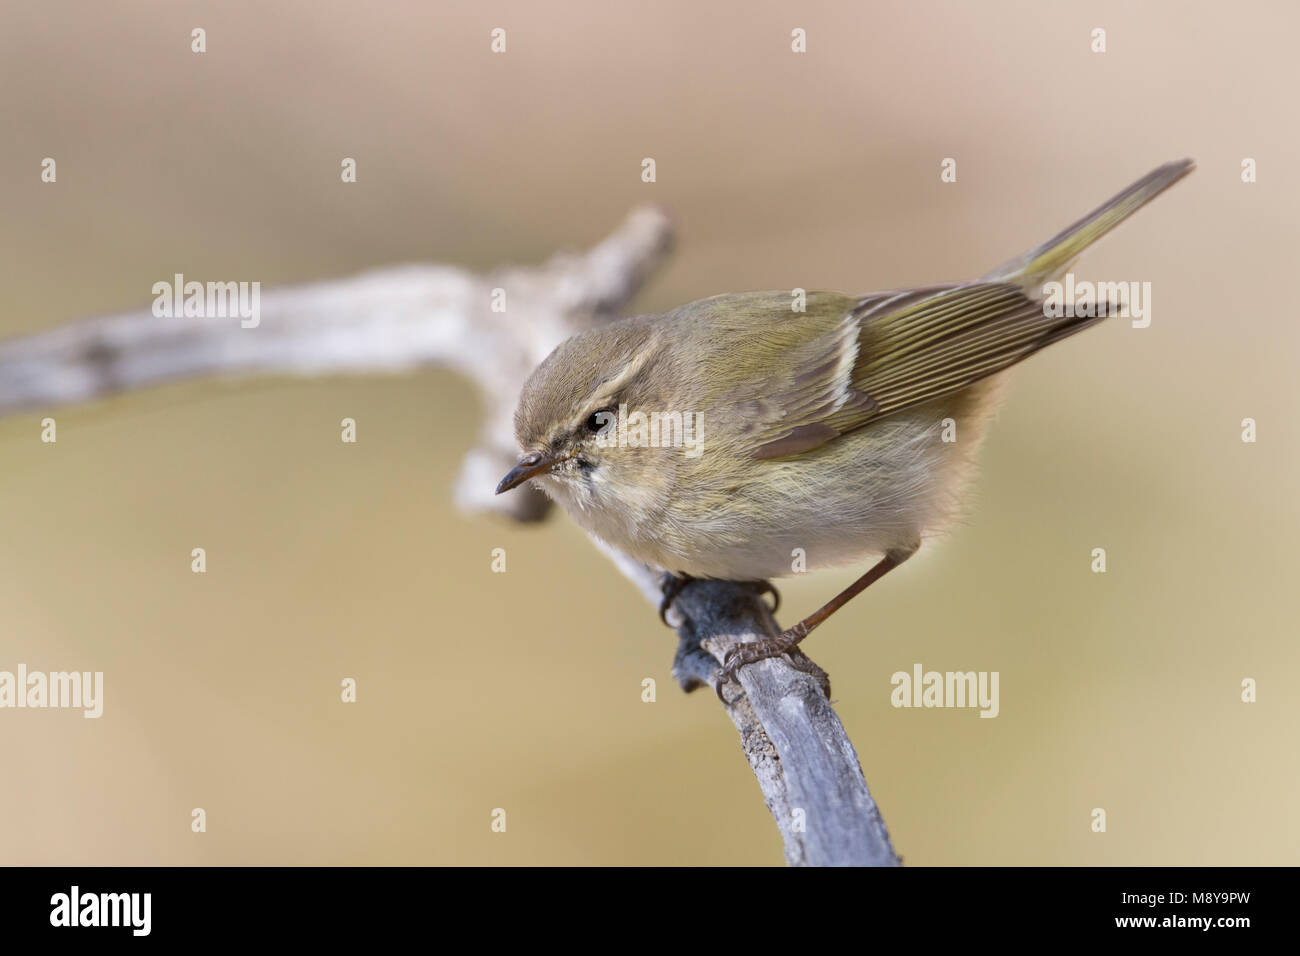 Humes Bladkoning; Hume's Leaf Warbler Stock Photo